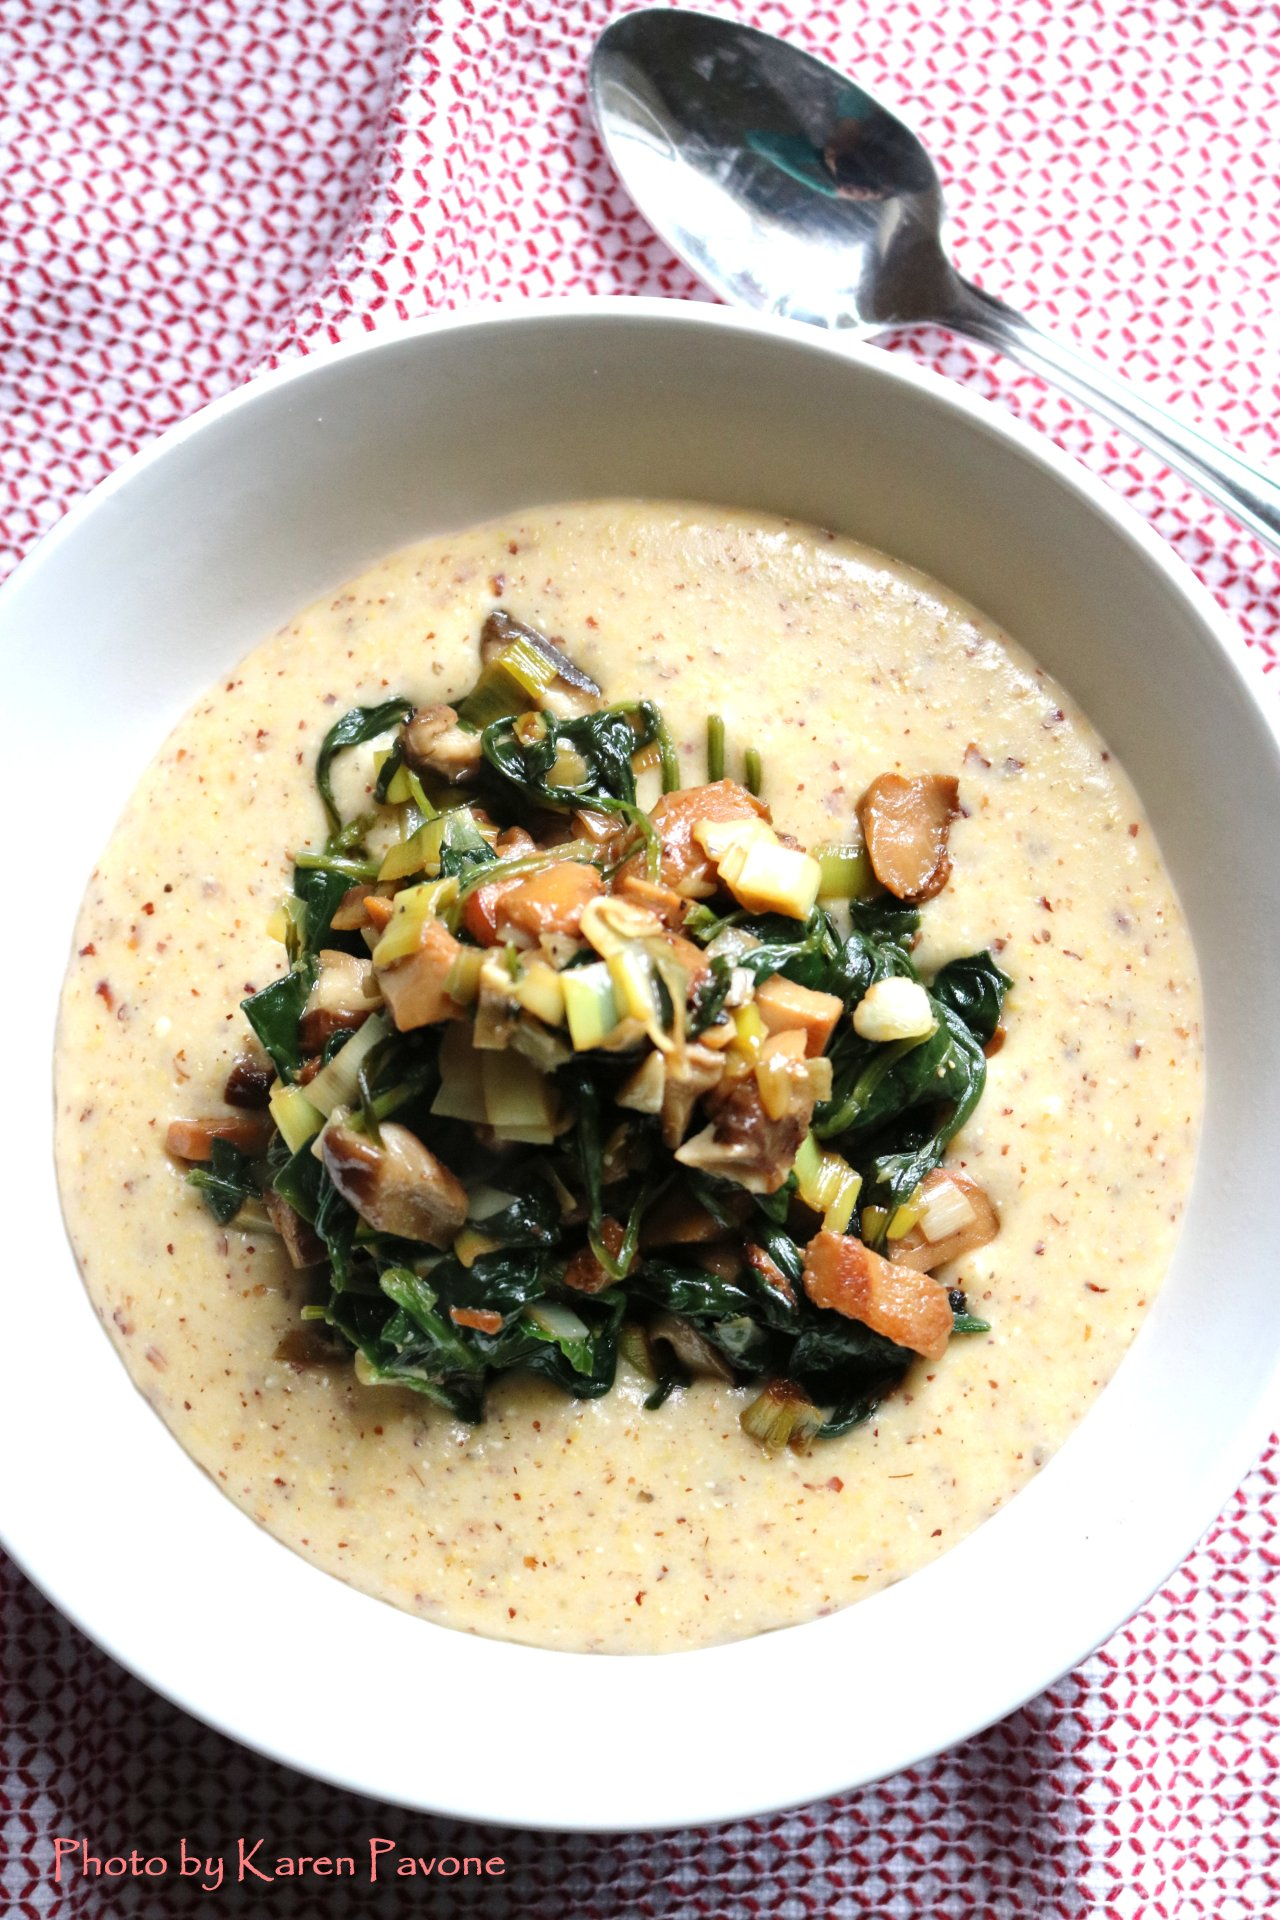 In Season: Creamy Polenta with Chanterelles, Leeks & Spinach